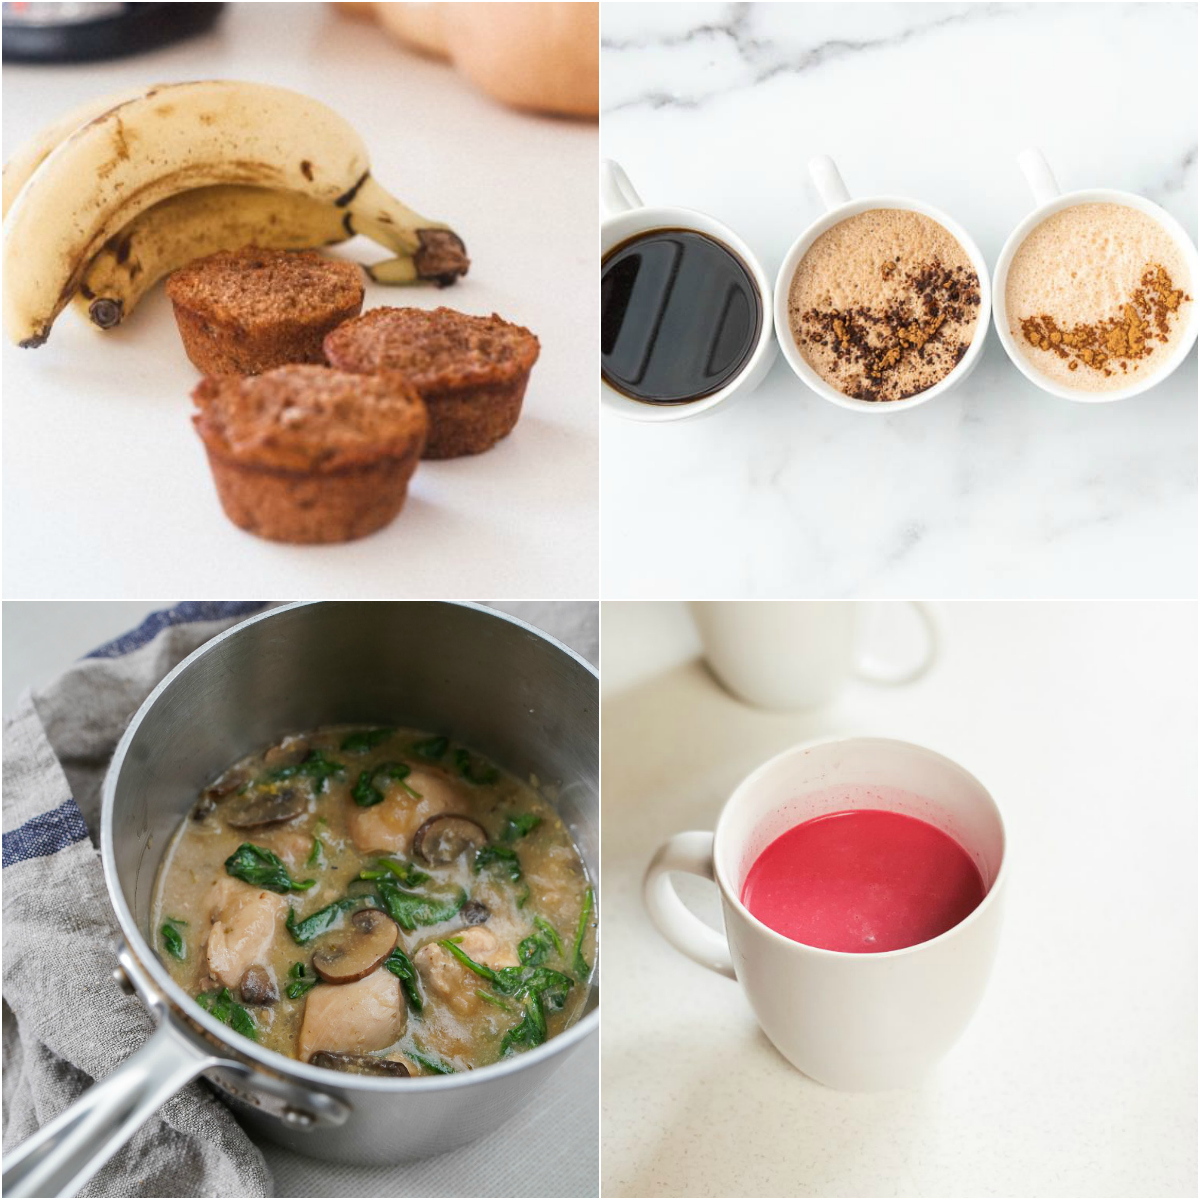 Paleo AIP Recipe Roundtable #305 | Phoenix Helix - *Featured Recipes: Banana Bread Muffins, Creamy Instant Pot Mushroom Chicken, Coffee Alternatives, and Beetroot Latte